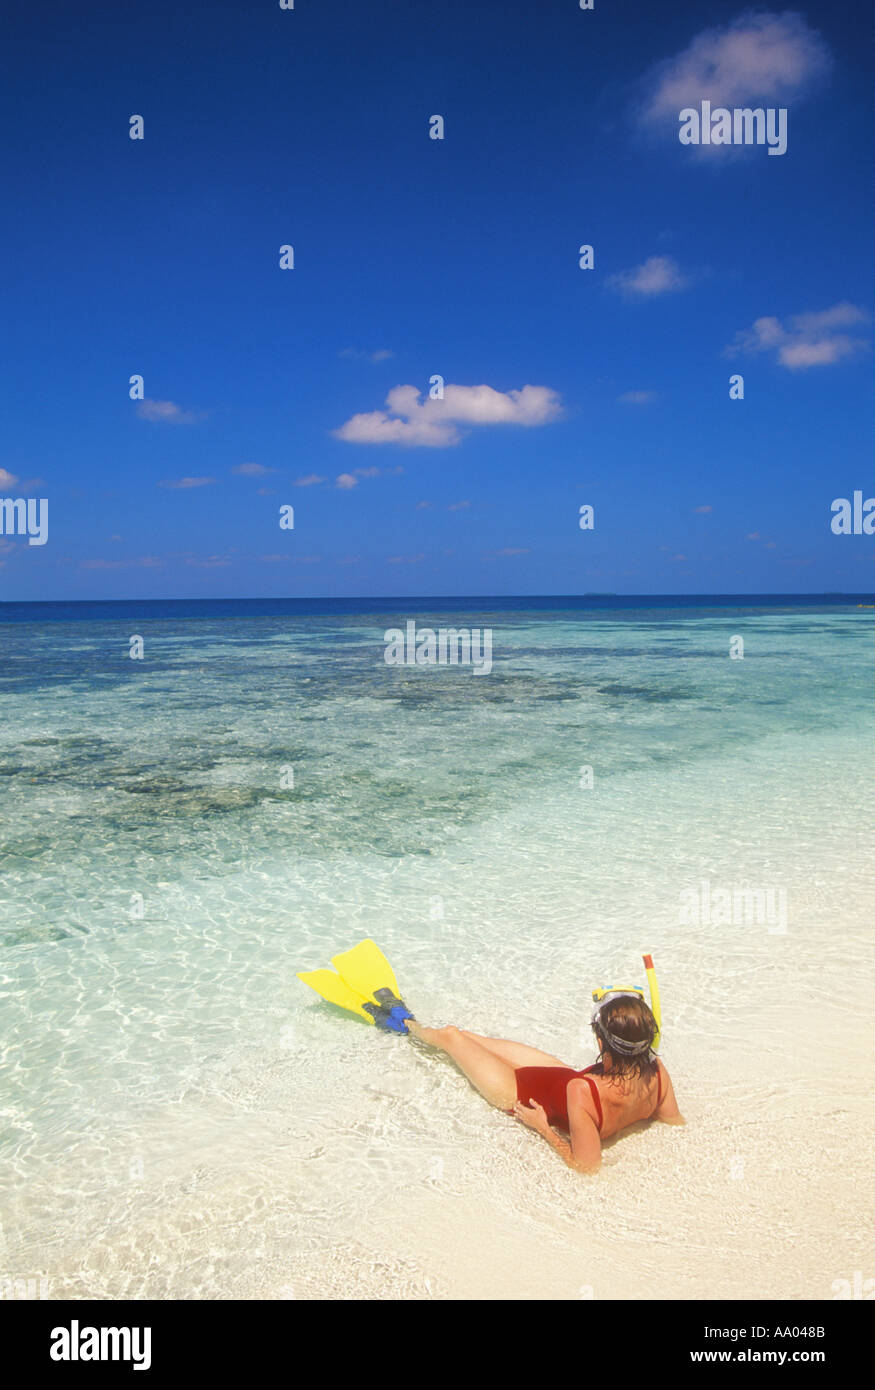 Woman in swimsuit resting in shallow water Maldives Indian Ocean model released image - Stock Image